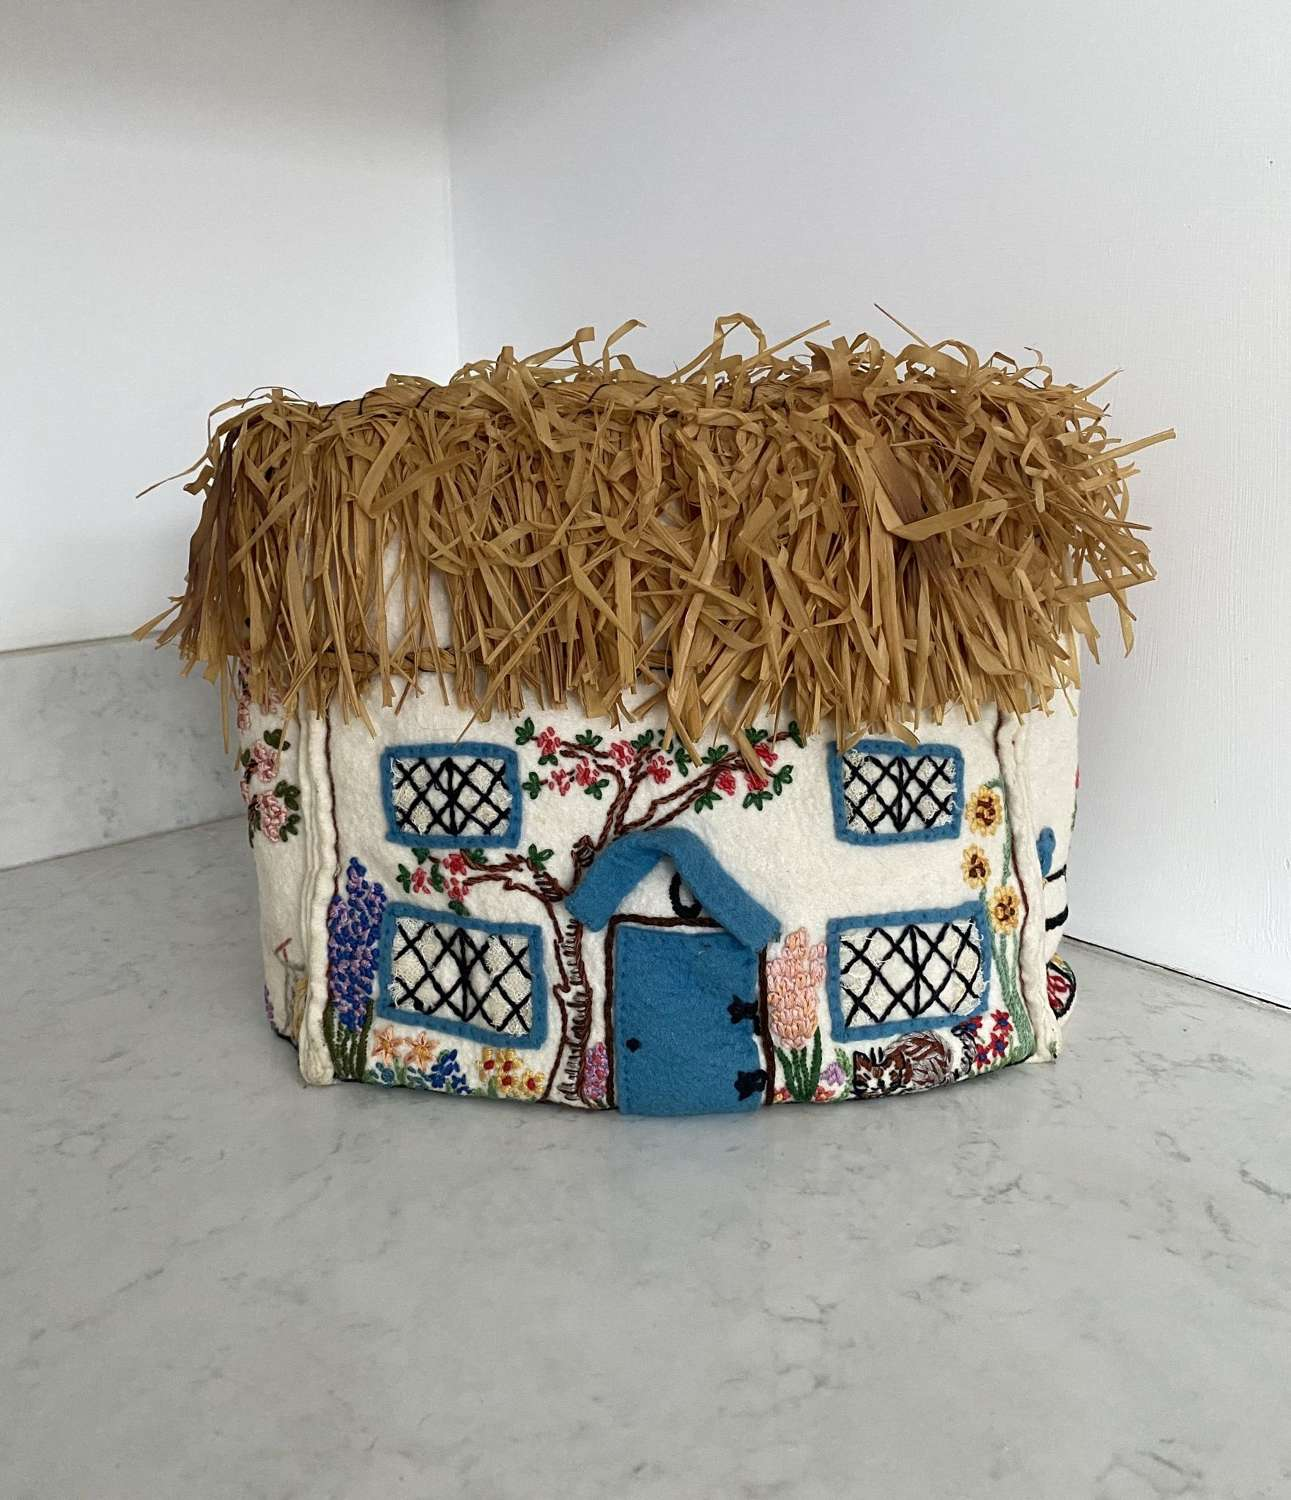 Early 20th Century Embroidered Felt Cottage Tea Cosy with Straw Roof